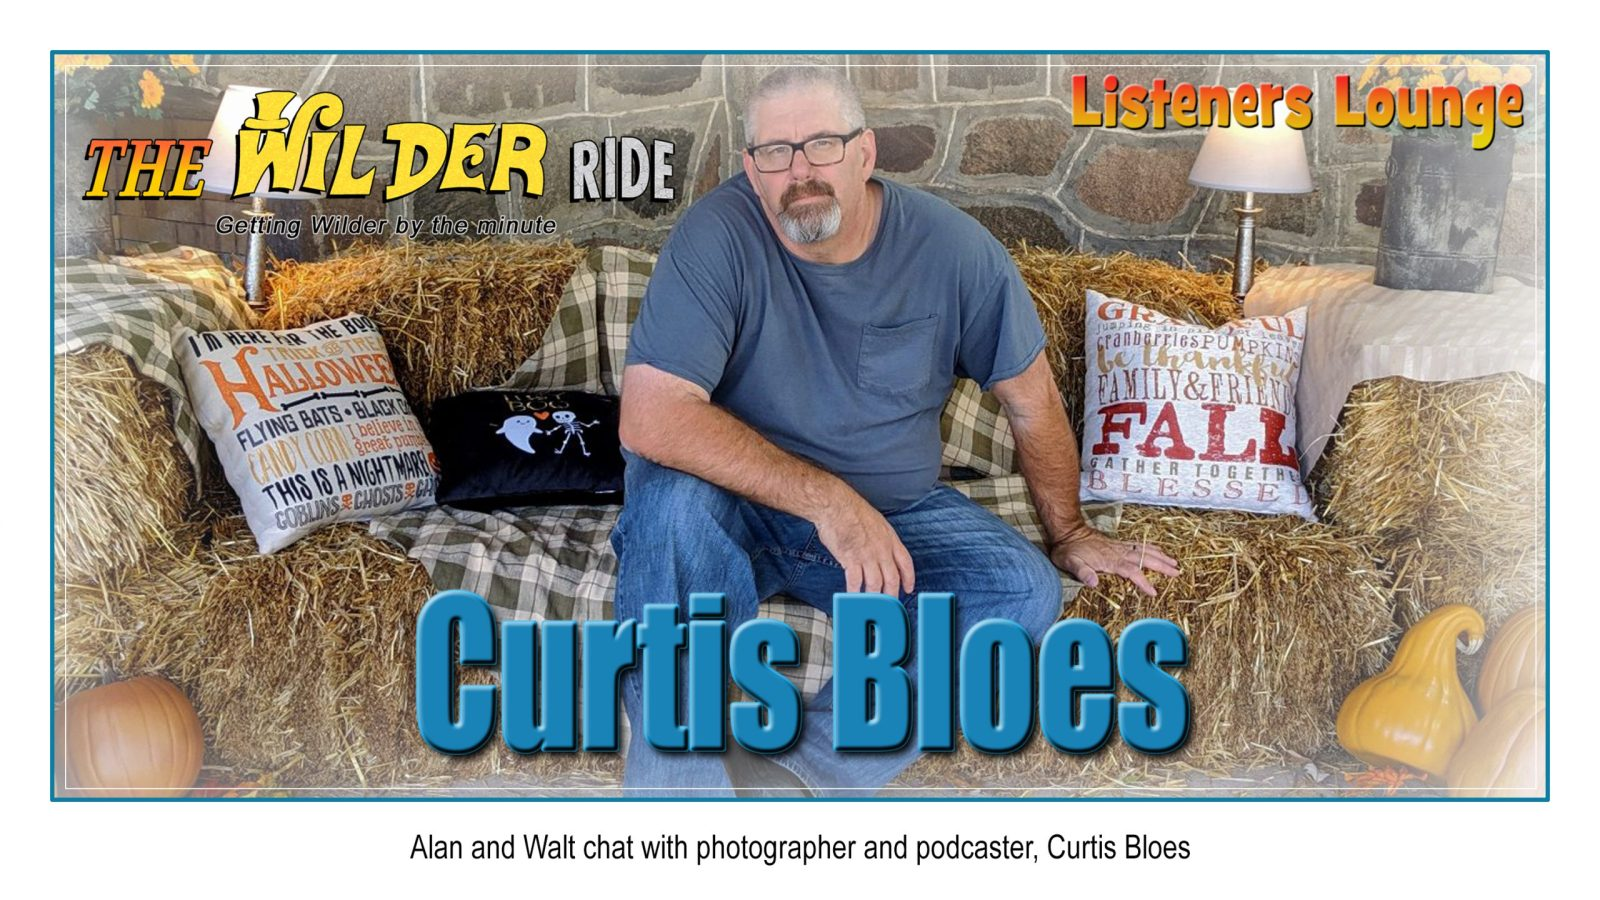 Curtis Bloes